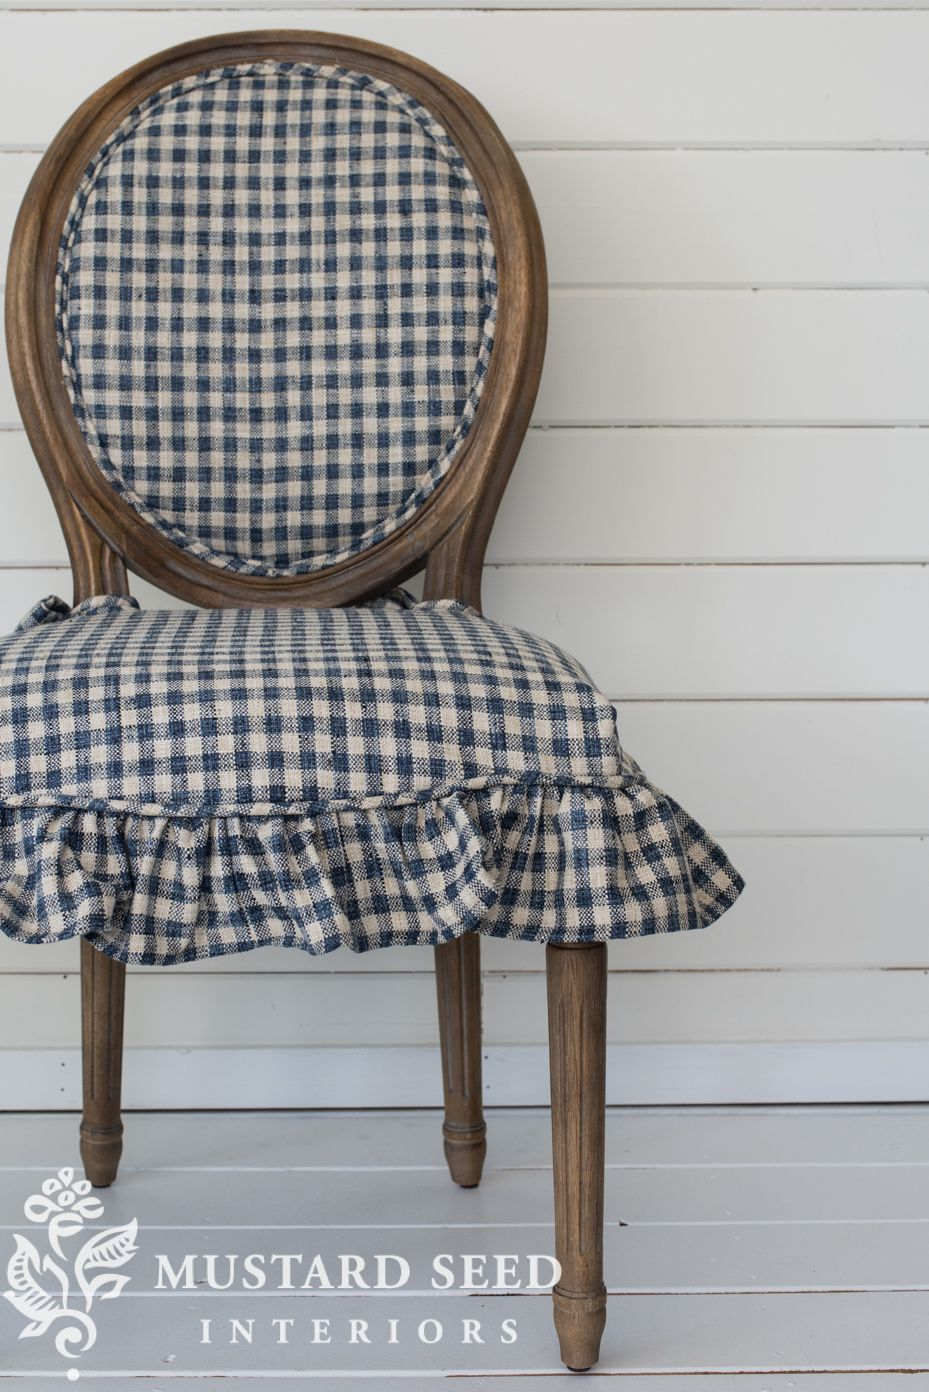 cottage style kitchen chairs teak patio chair makeovers house of dreams home decor inspired by miss mustard seed farmhouse inspiration missmustardseed farmhousestyle upholstery frenchchairs